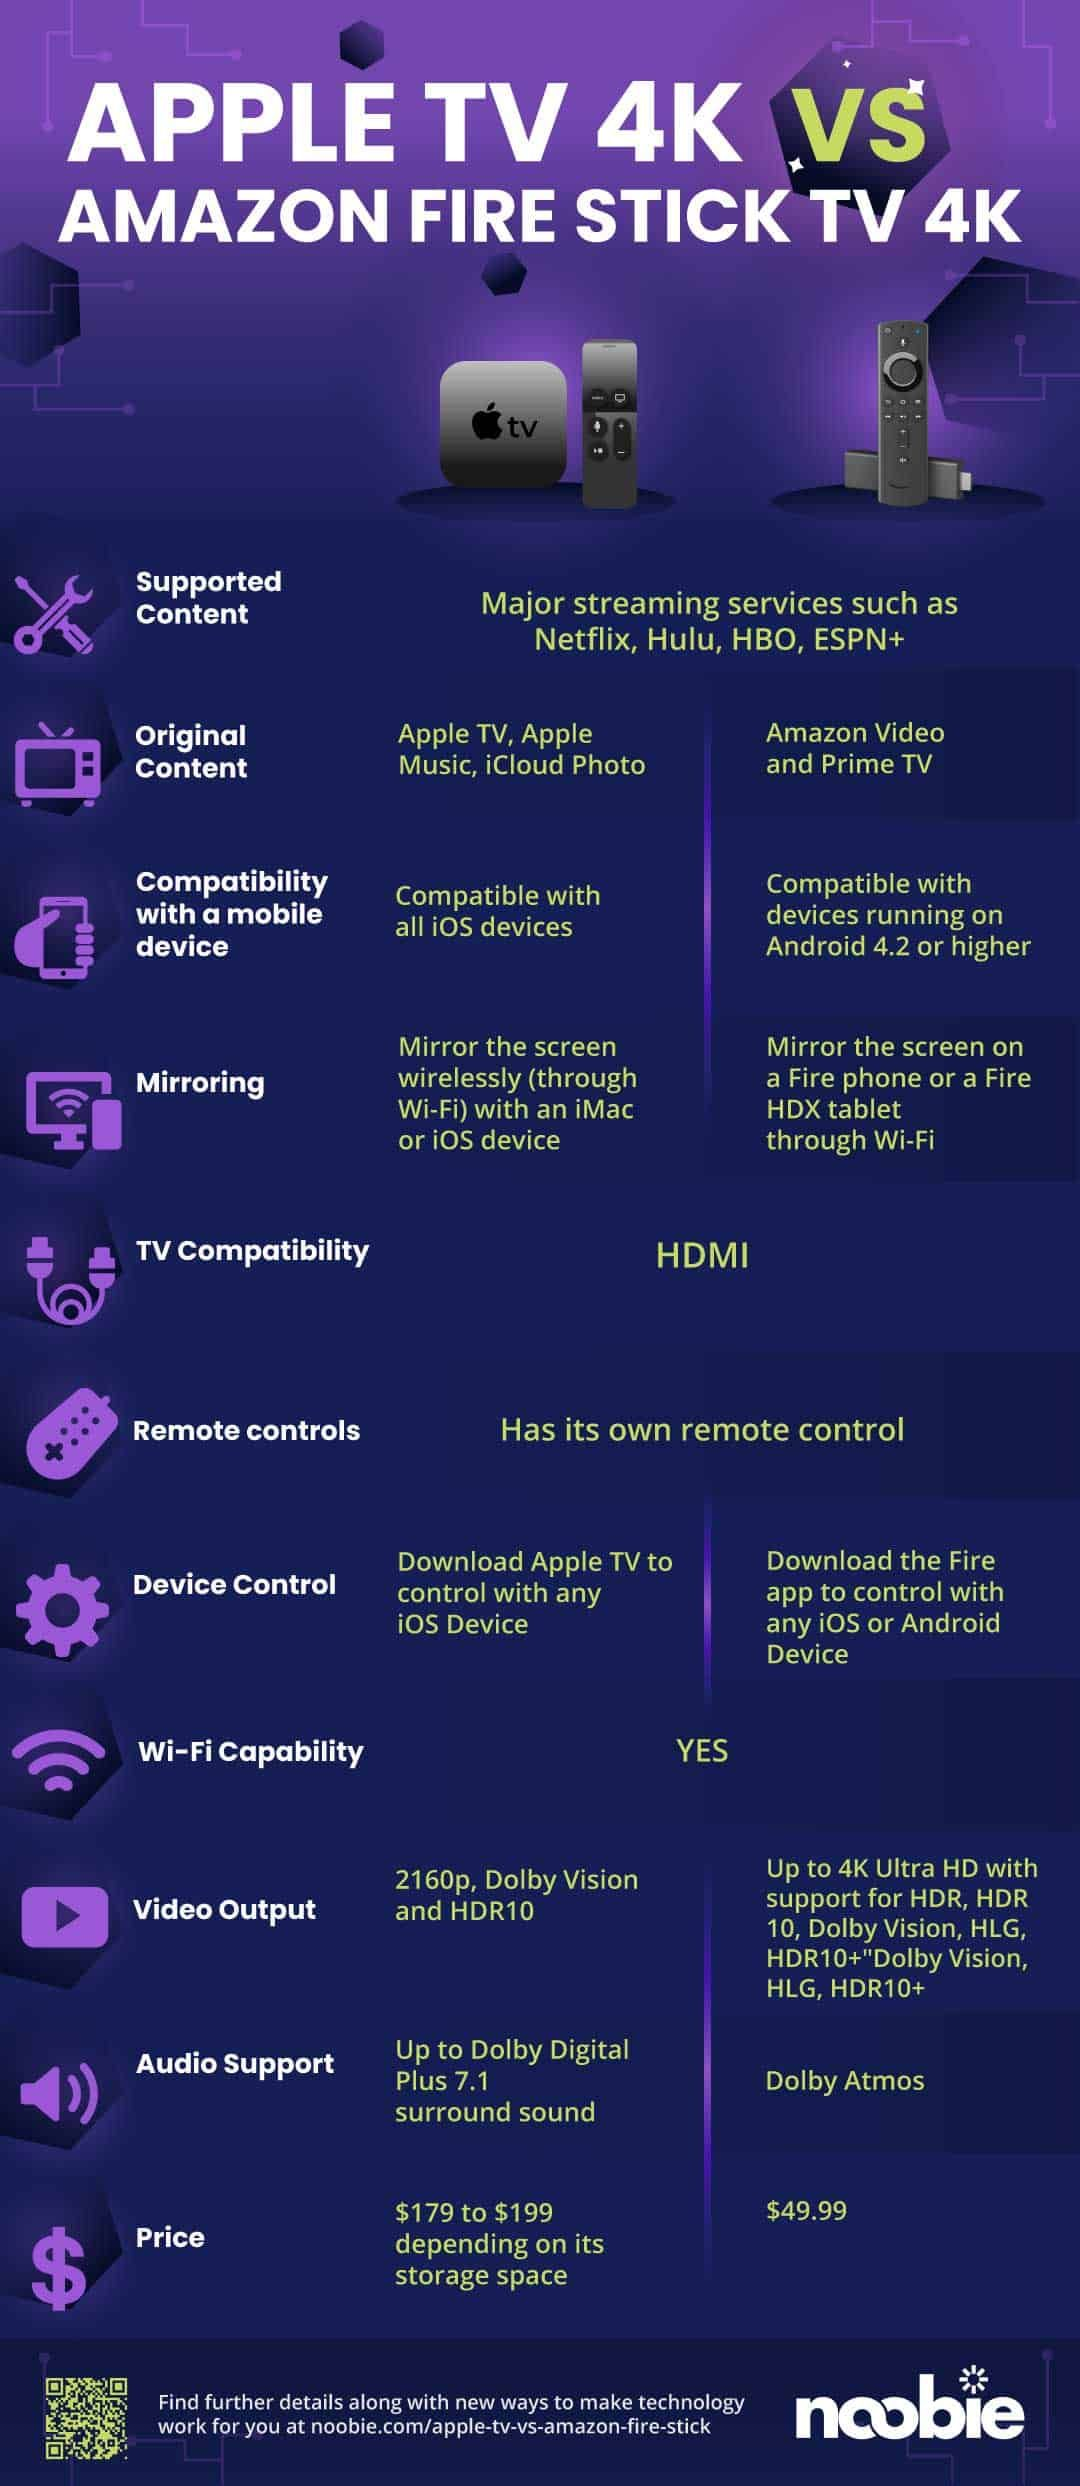 Apple TV vs Amazon Fire Stick Duel Revealed [INFOGRAPHIC